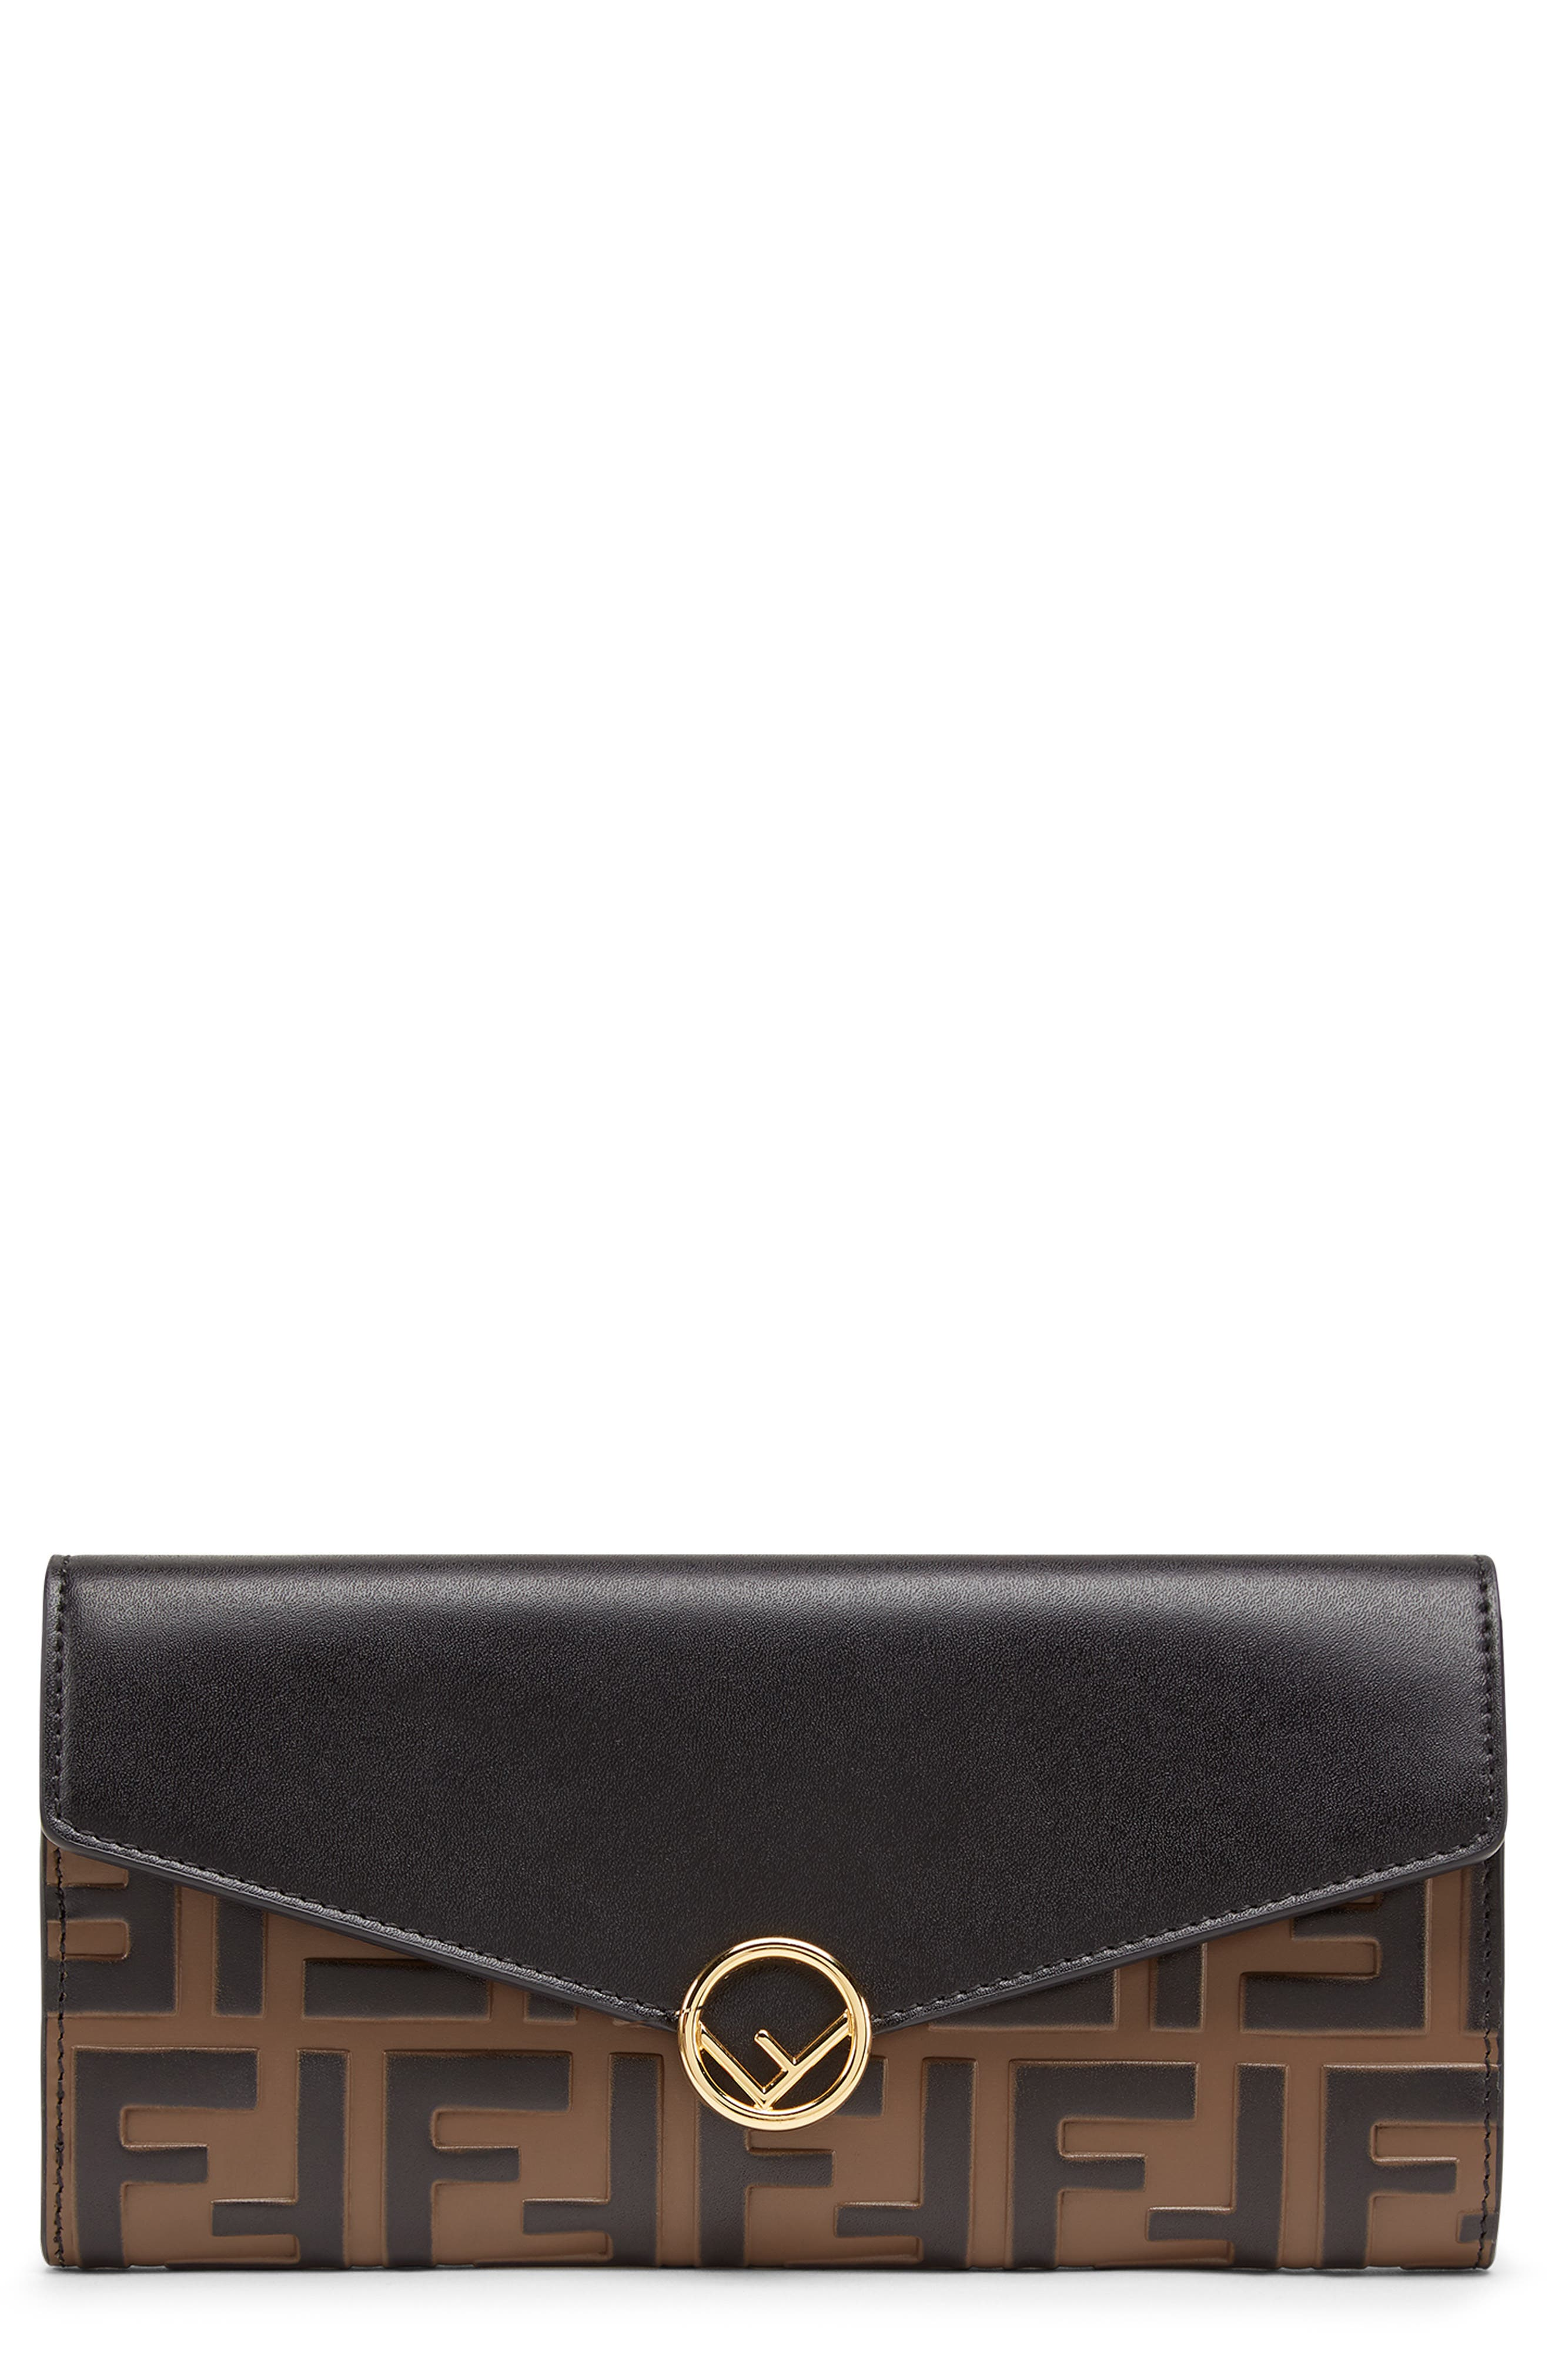 FENDI Logo Calfskin Leather Continental Wallet, Main, color, NERO/ MAYA